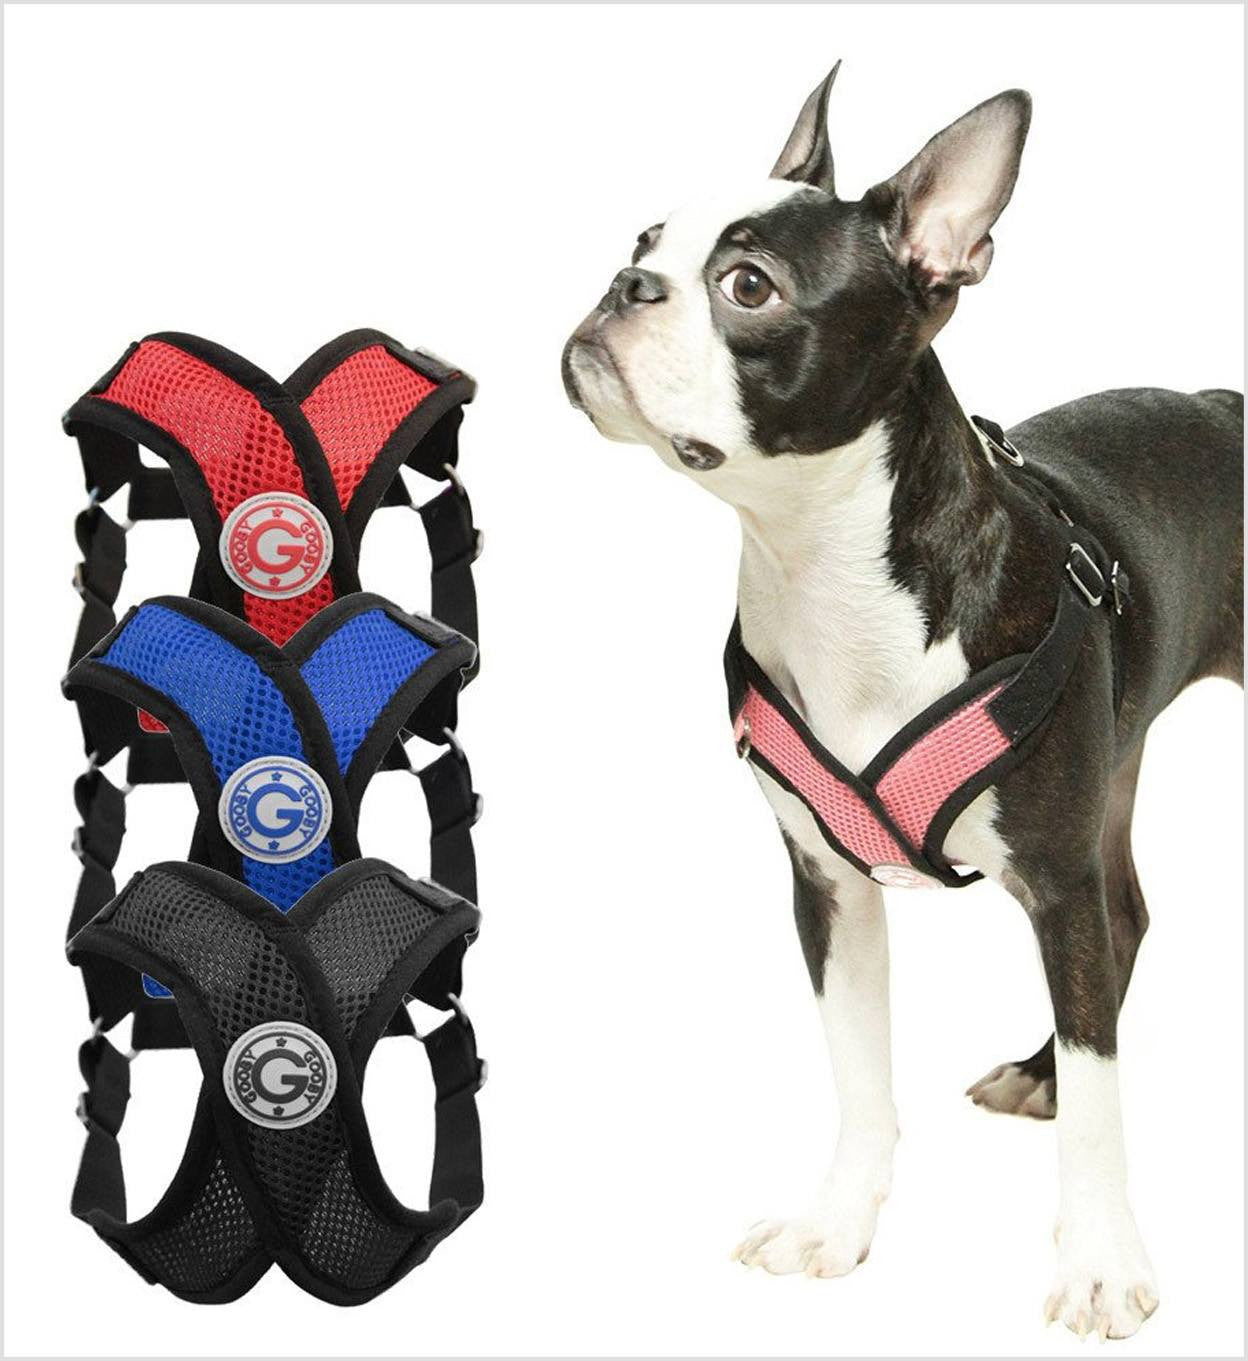 best dog harness walking vest dhgate rope under and large with comfort colorful ropes com padded soft comforter product retriever